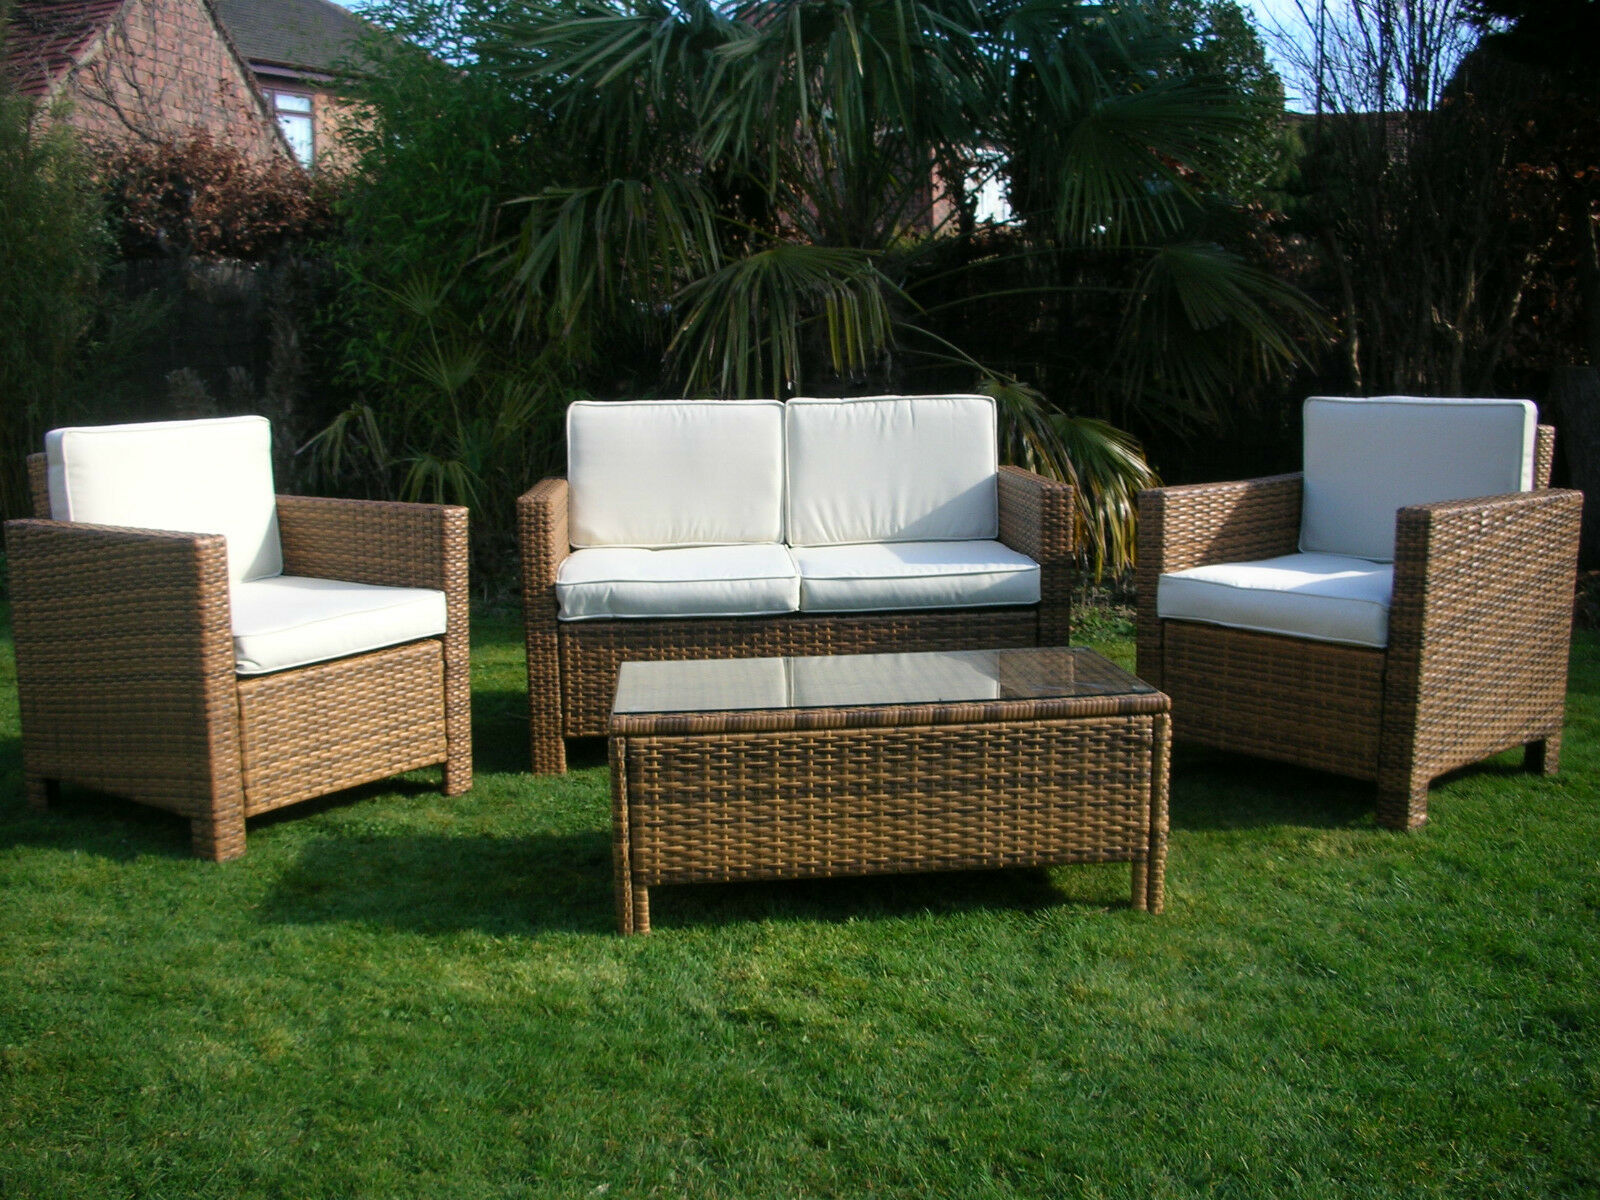 New garden rattan wicker outdoor conservatory furniture for Outdoor furniture wicker